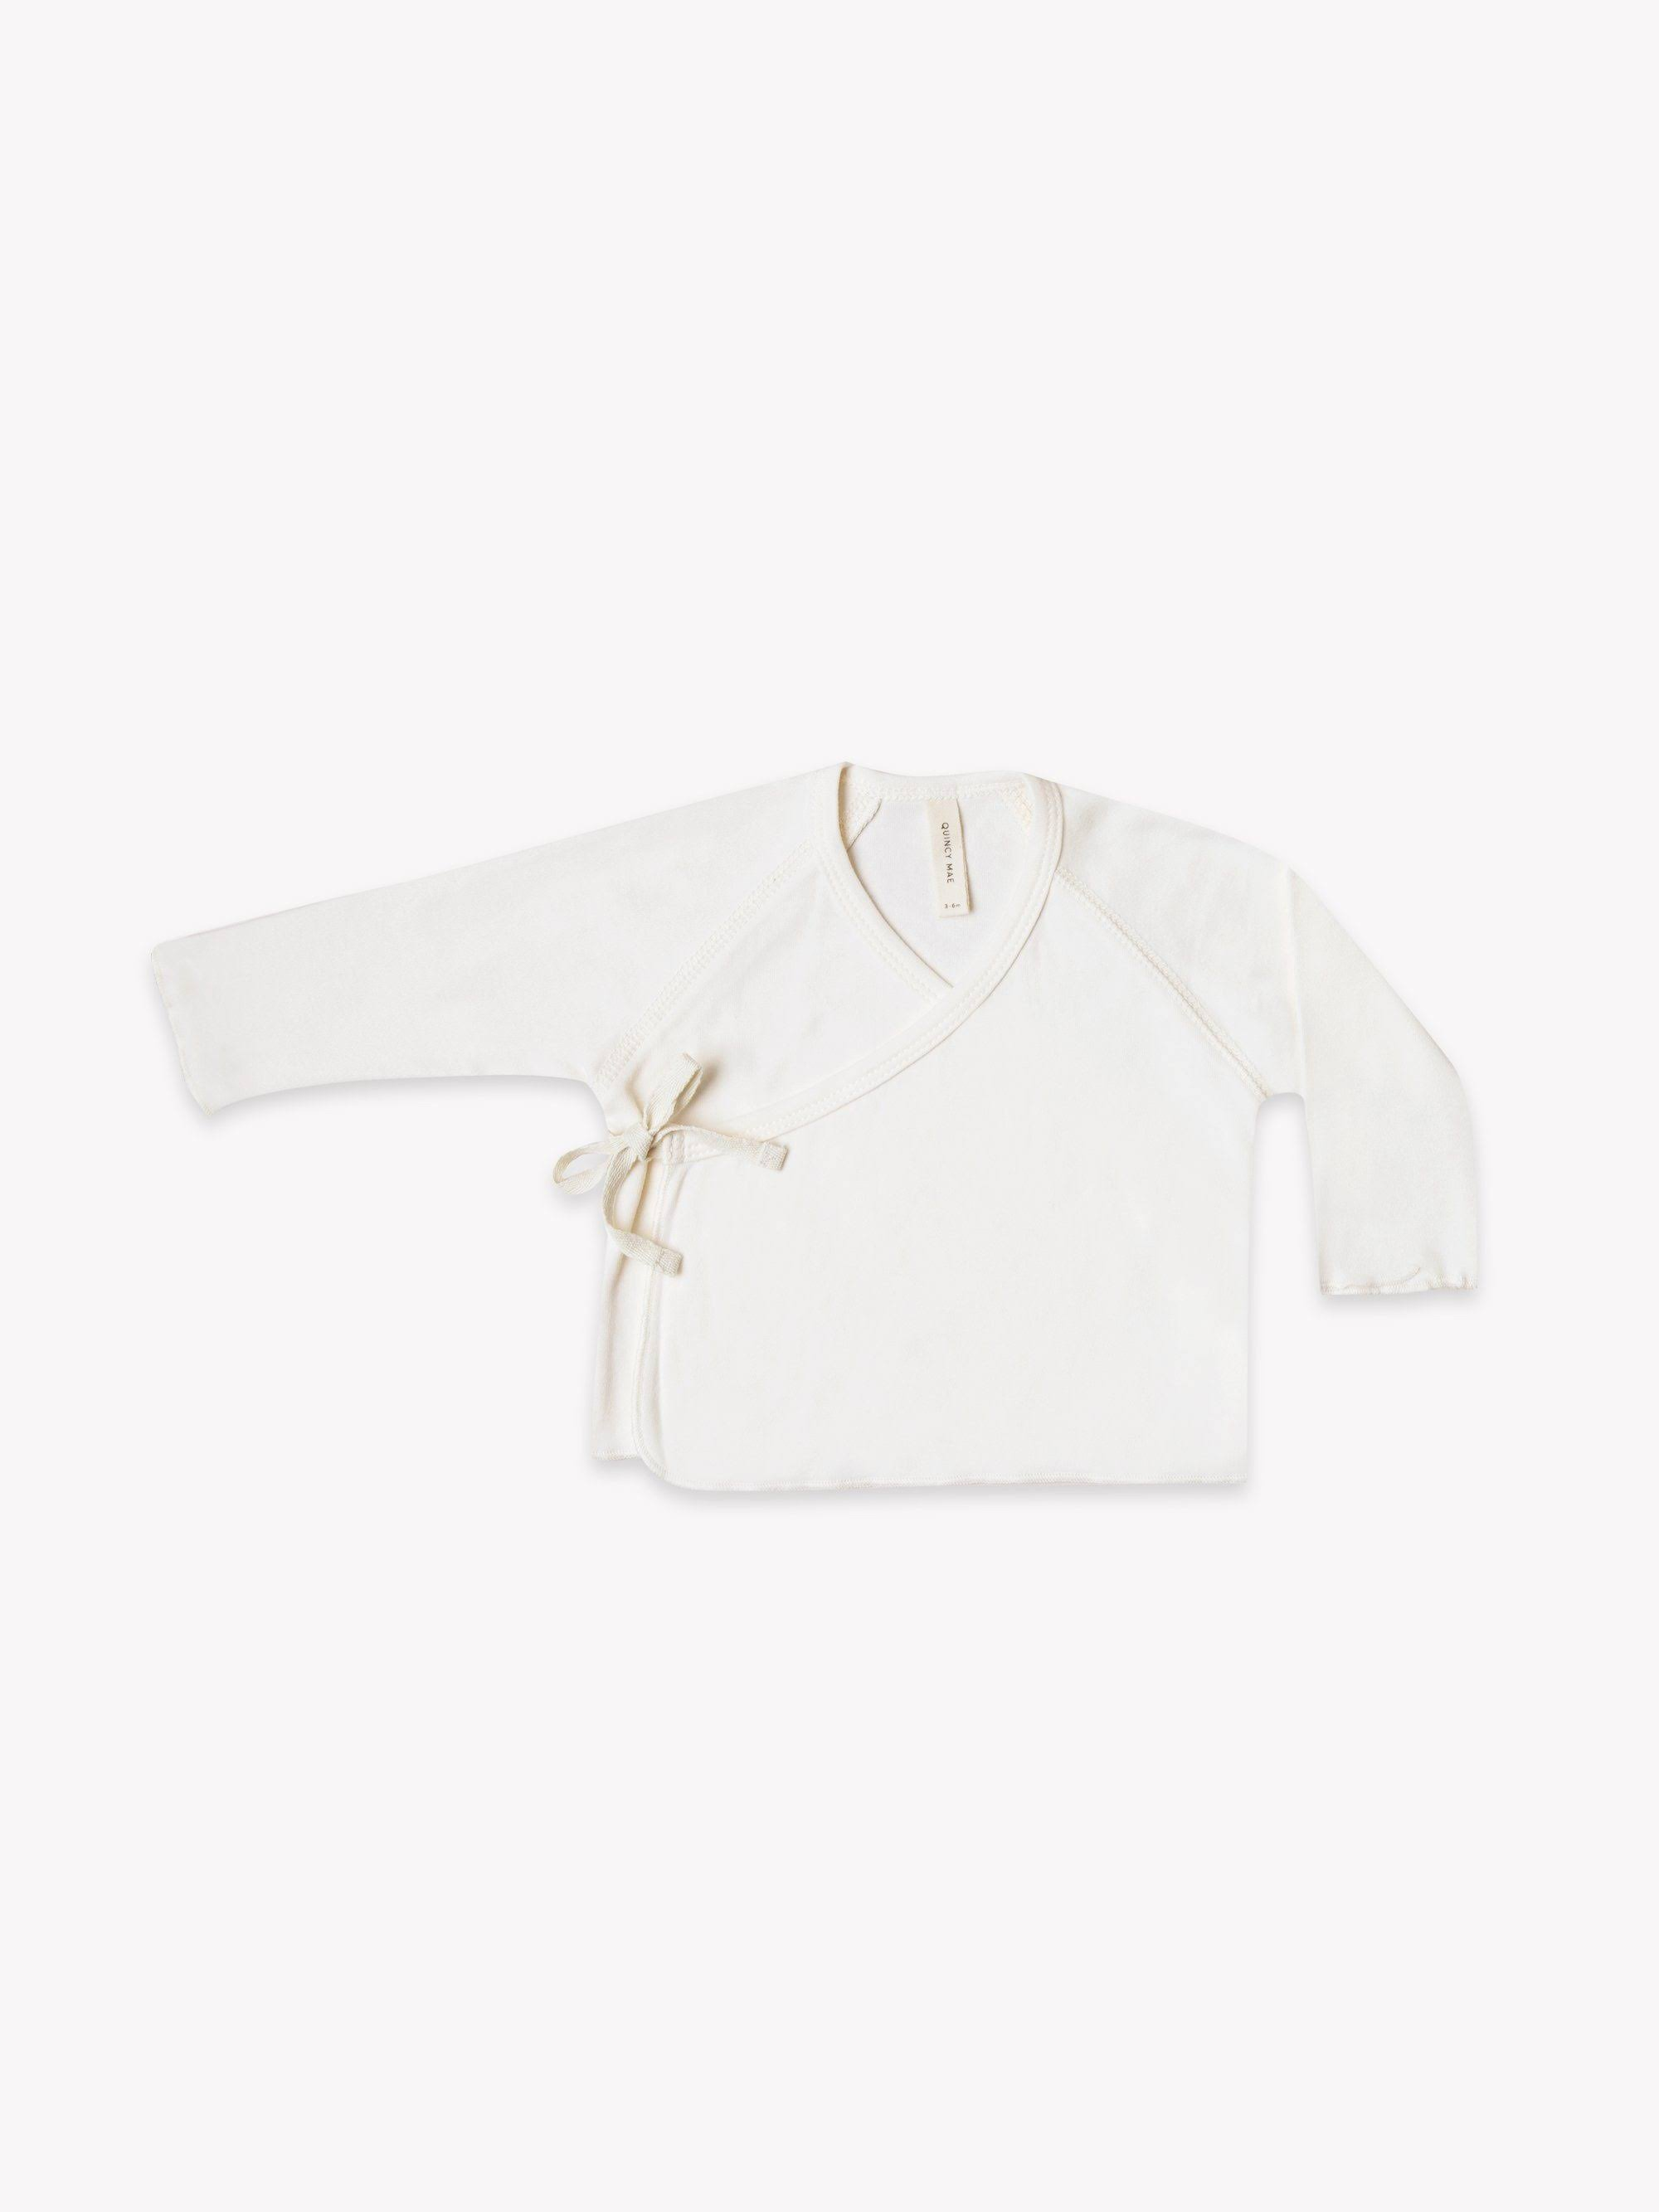 Quincy Mae Kimono Baby Top with 100% Organic Cotton 6 - 12 M / Ivory